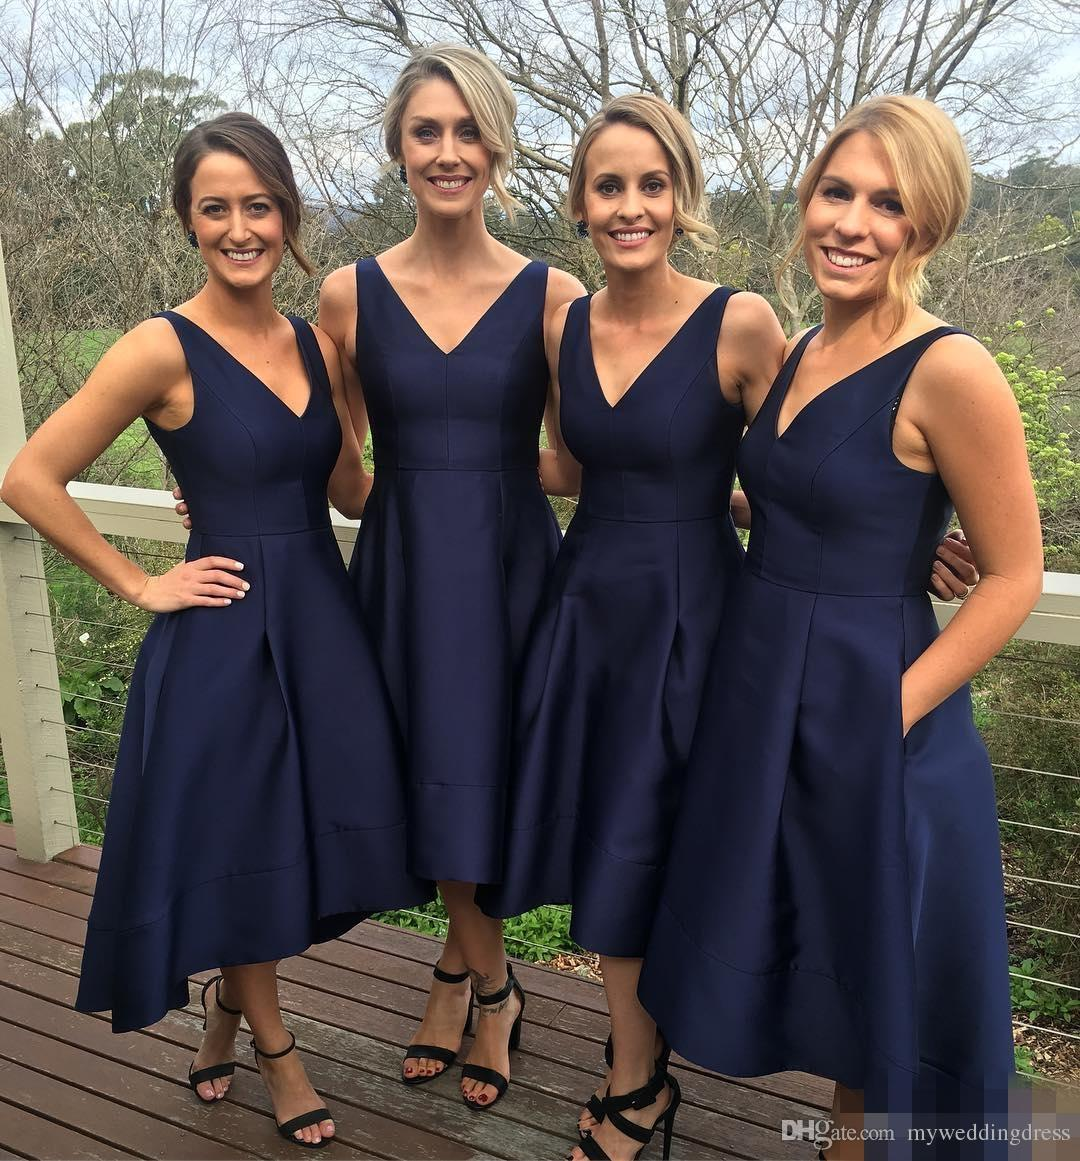 Short bridesmaid dress navy blue bridesmaid dress cheap short bridesmaid dress navy blue bridesmaid dress cheap bridesmaid dress knee length bridesmaid dress satin bridesmaid dress vintage bridesmaid dress ombrellifo Image collections